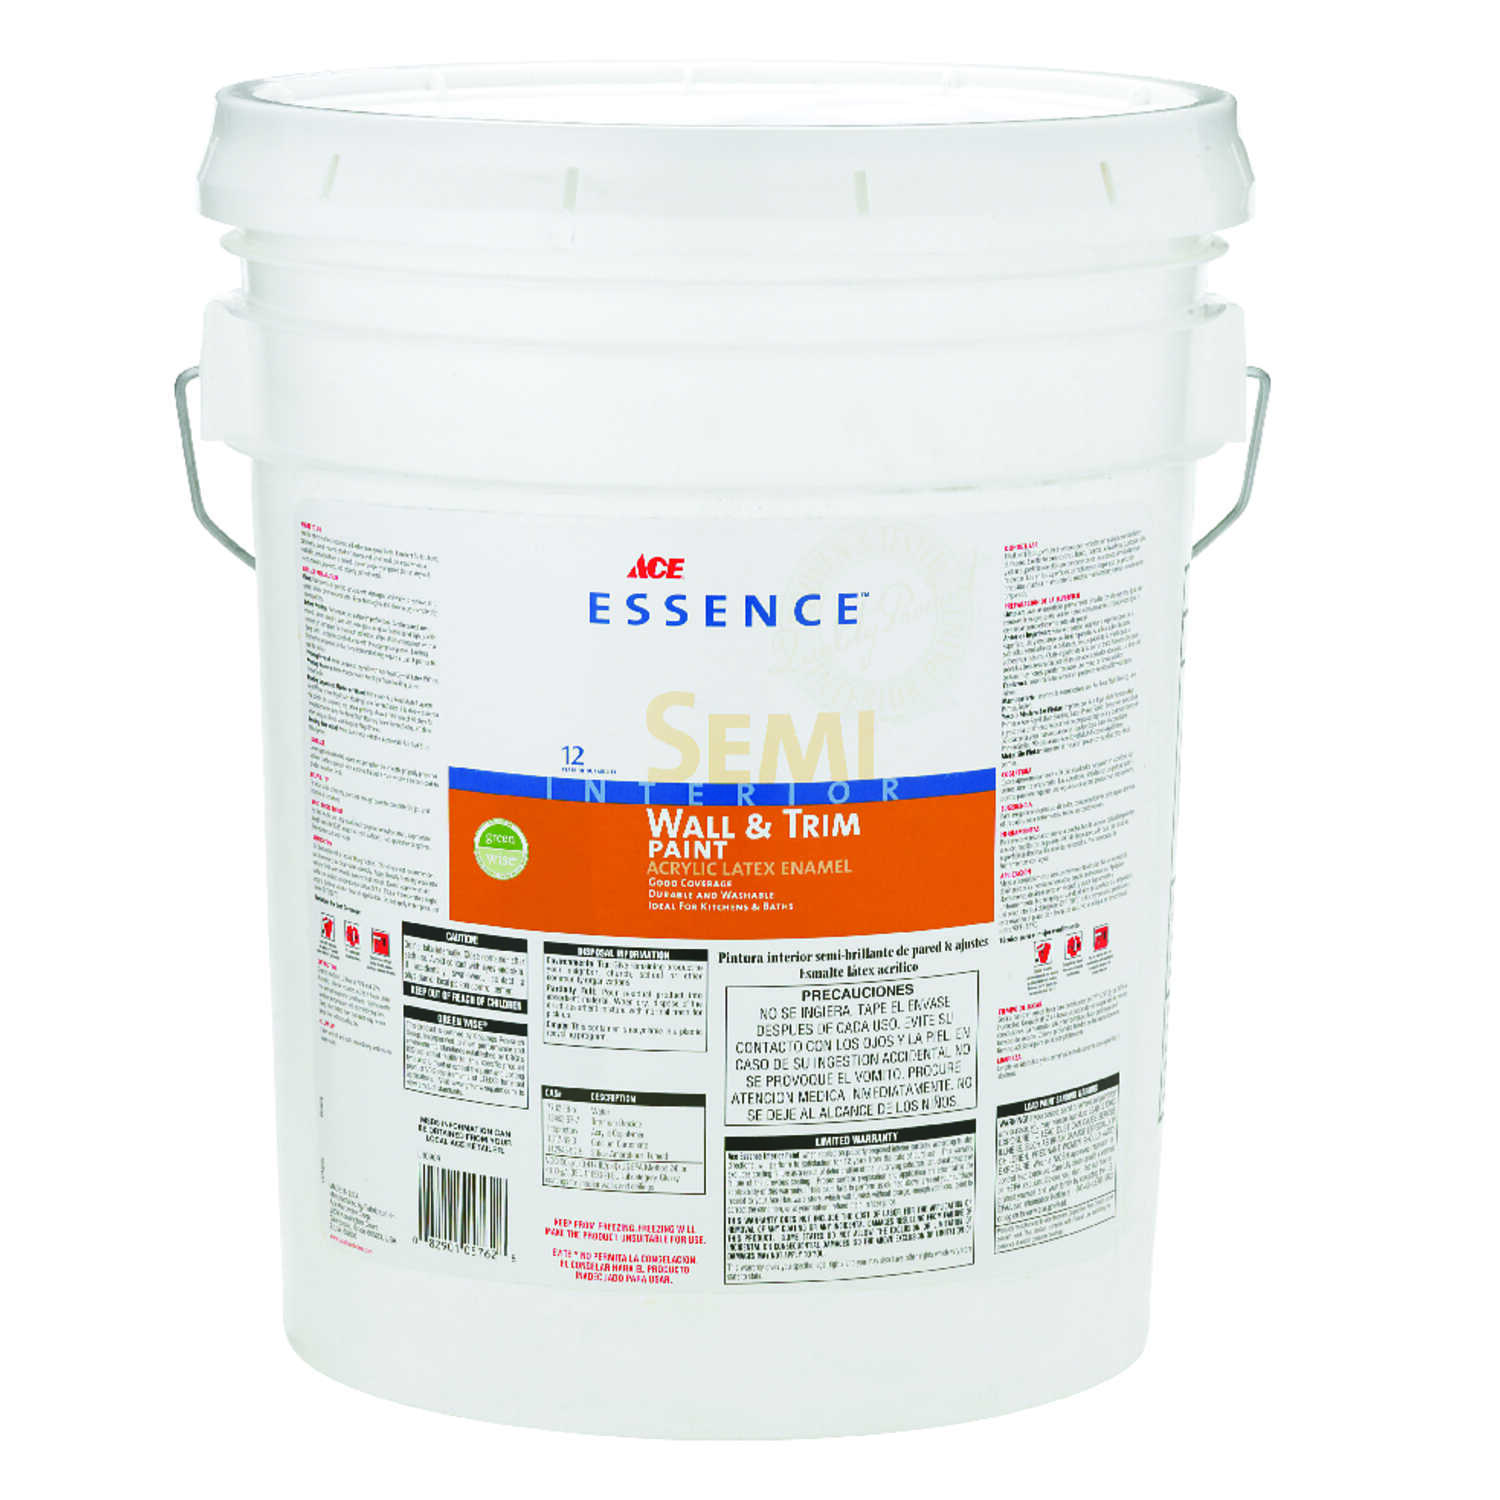 Ace  Essence  Semi-Gloss  Acrylic Latex  5 gal. Interior Latex Wall+Trim Paint  High Hiding White